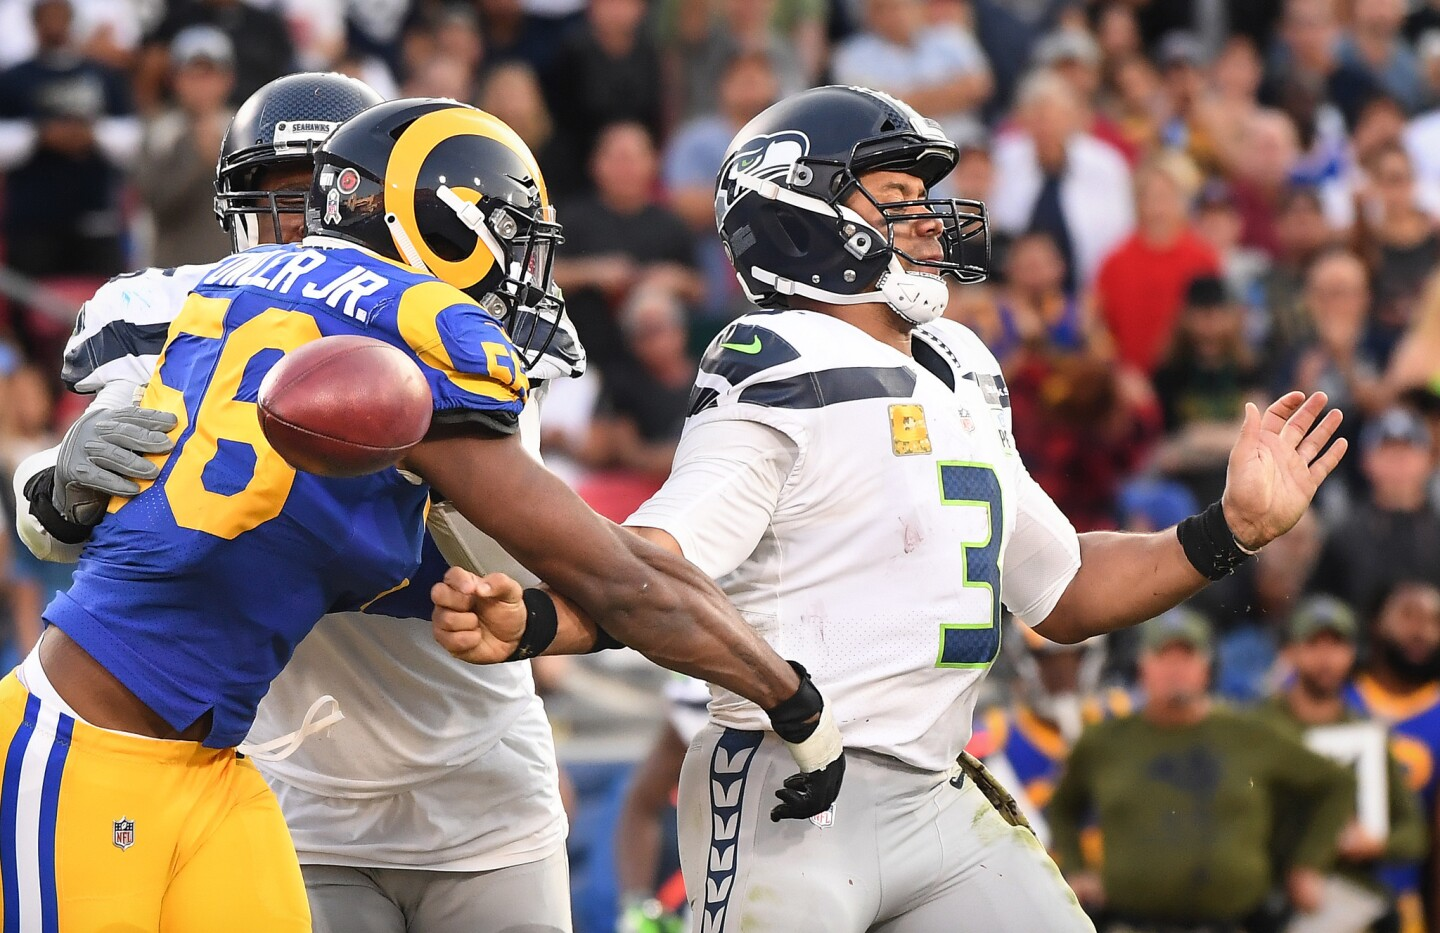 Rams linebacker Dante Fowler forces a fumble on Seattle Seahawks quarterback Russell Wilson in the fourth quarter at the Coliseum on Sunday.